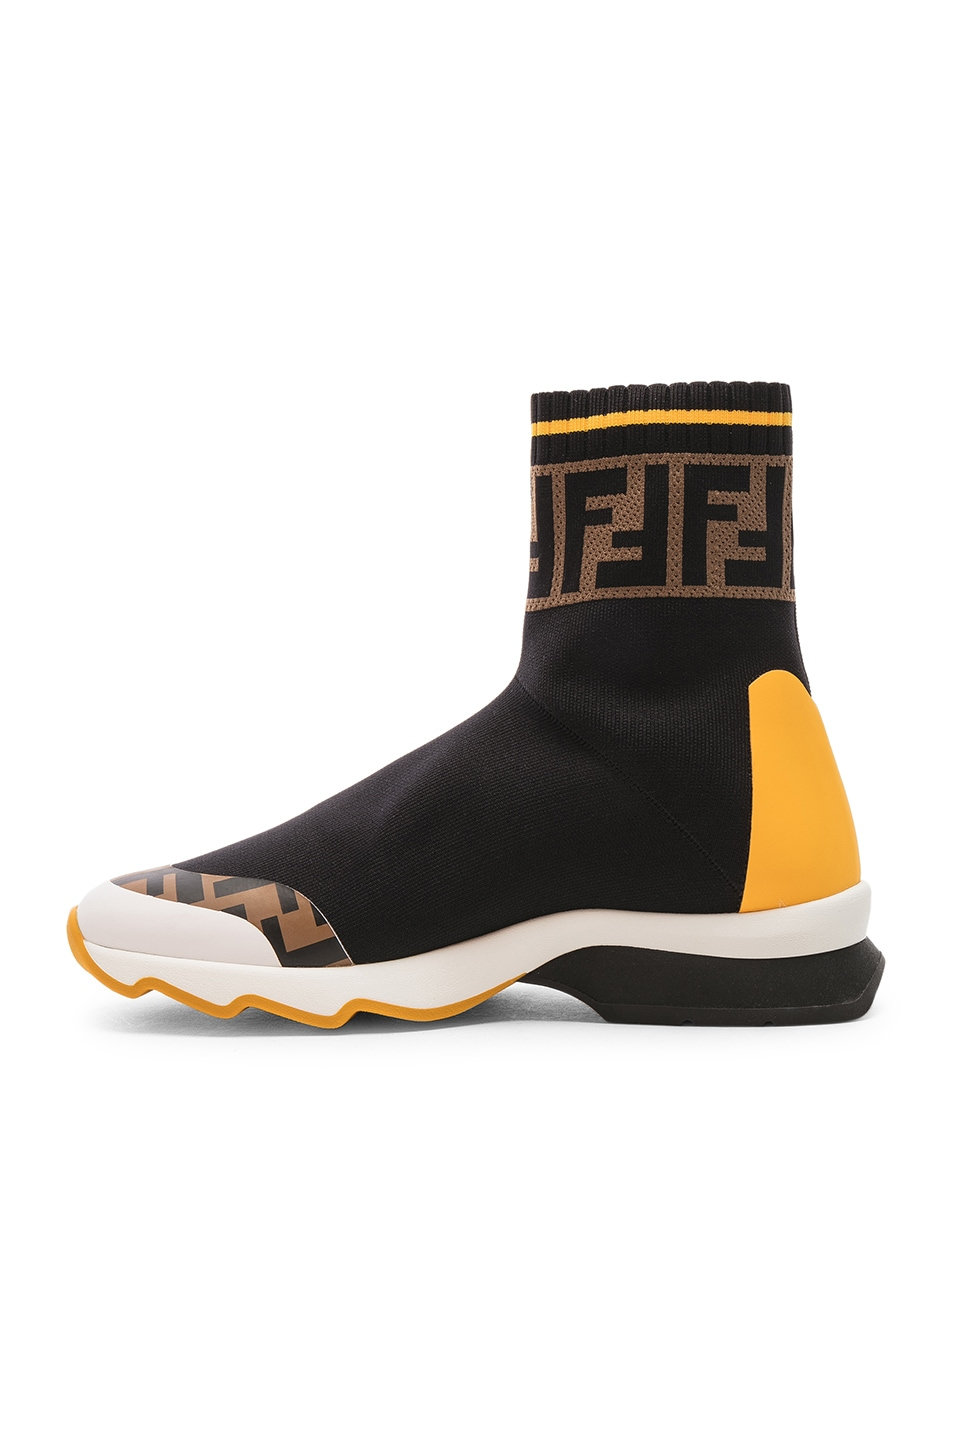 Image 5 of Fendi x FILA Sock Sneakers in Black & Multicolor